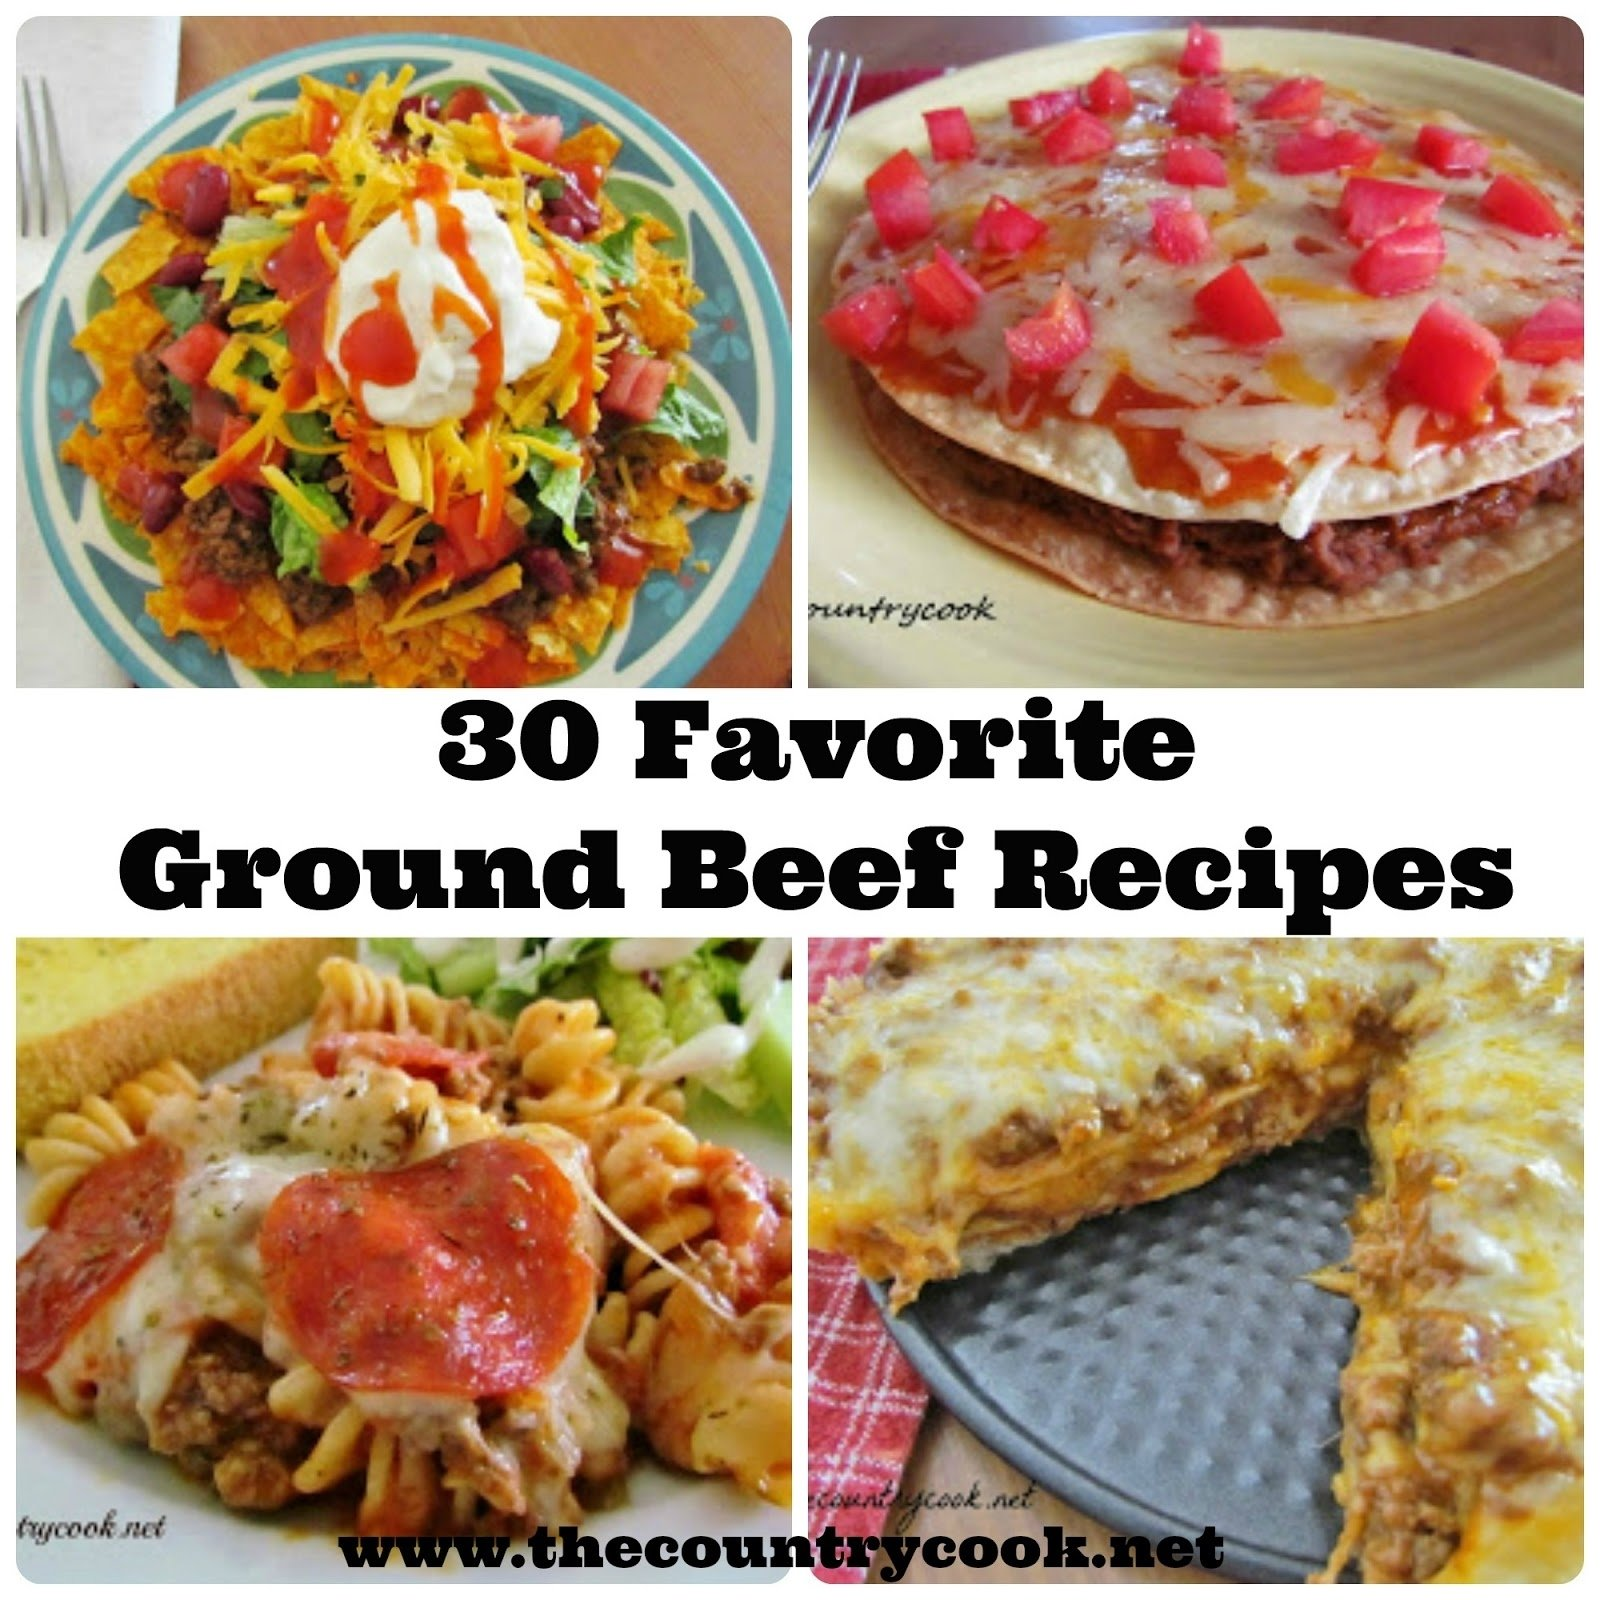 10 Fashionable Supper Ideas With Ground Beef 30 favorite ground beef recipes the country cook 7 2021